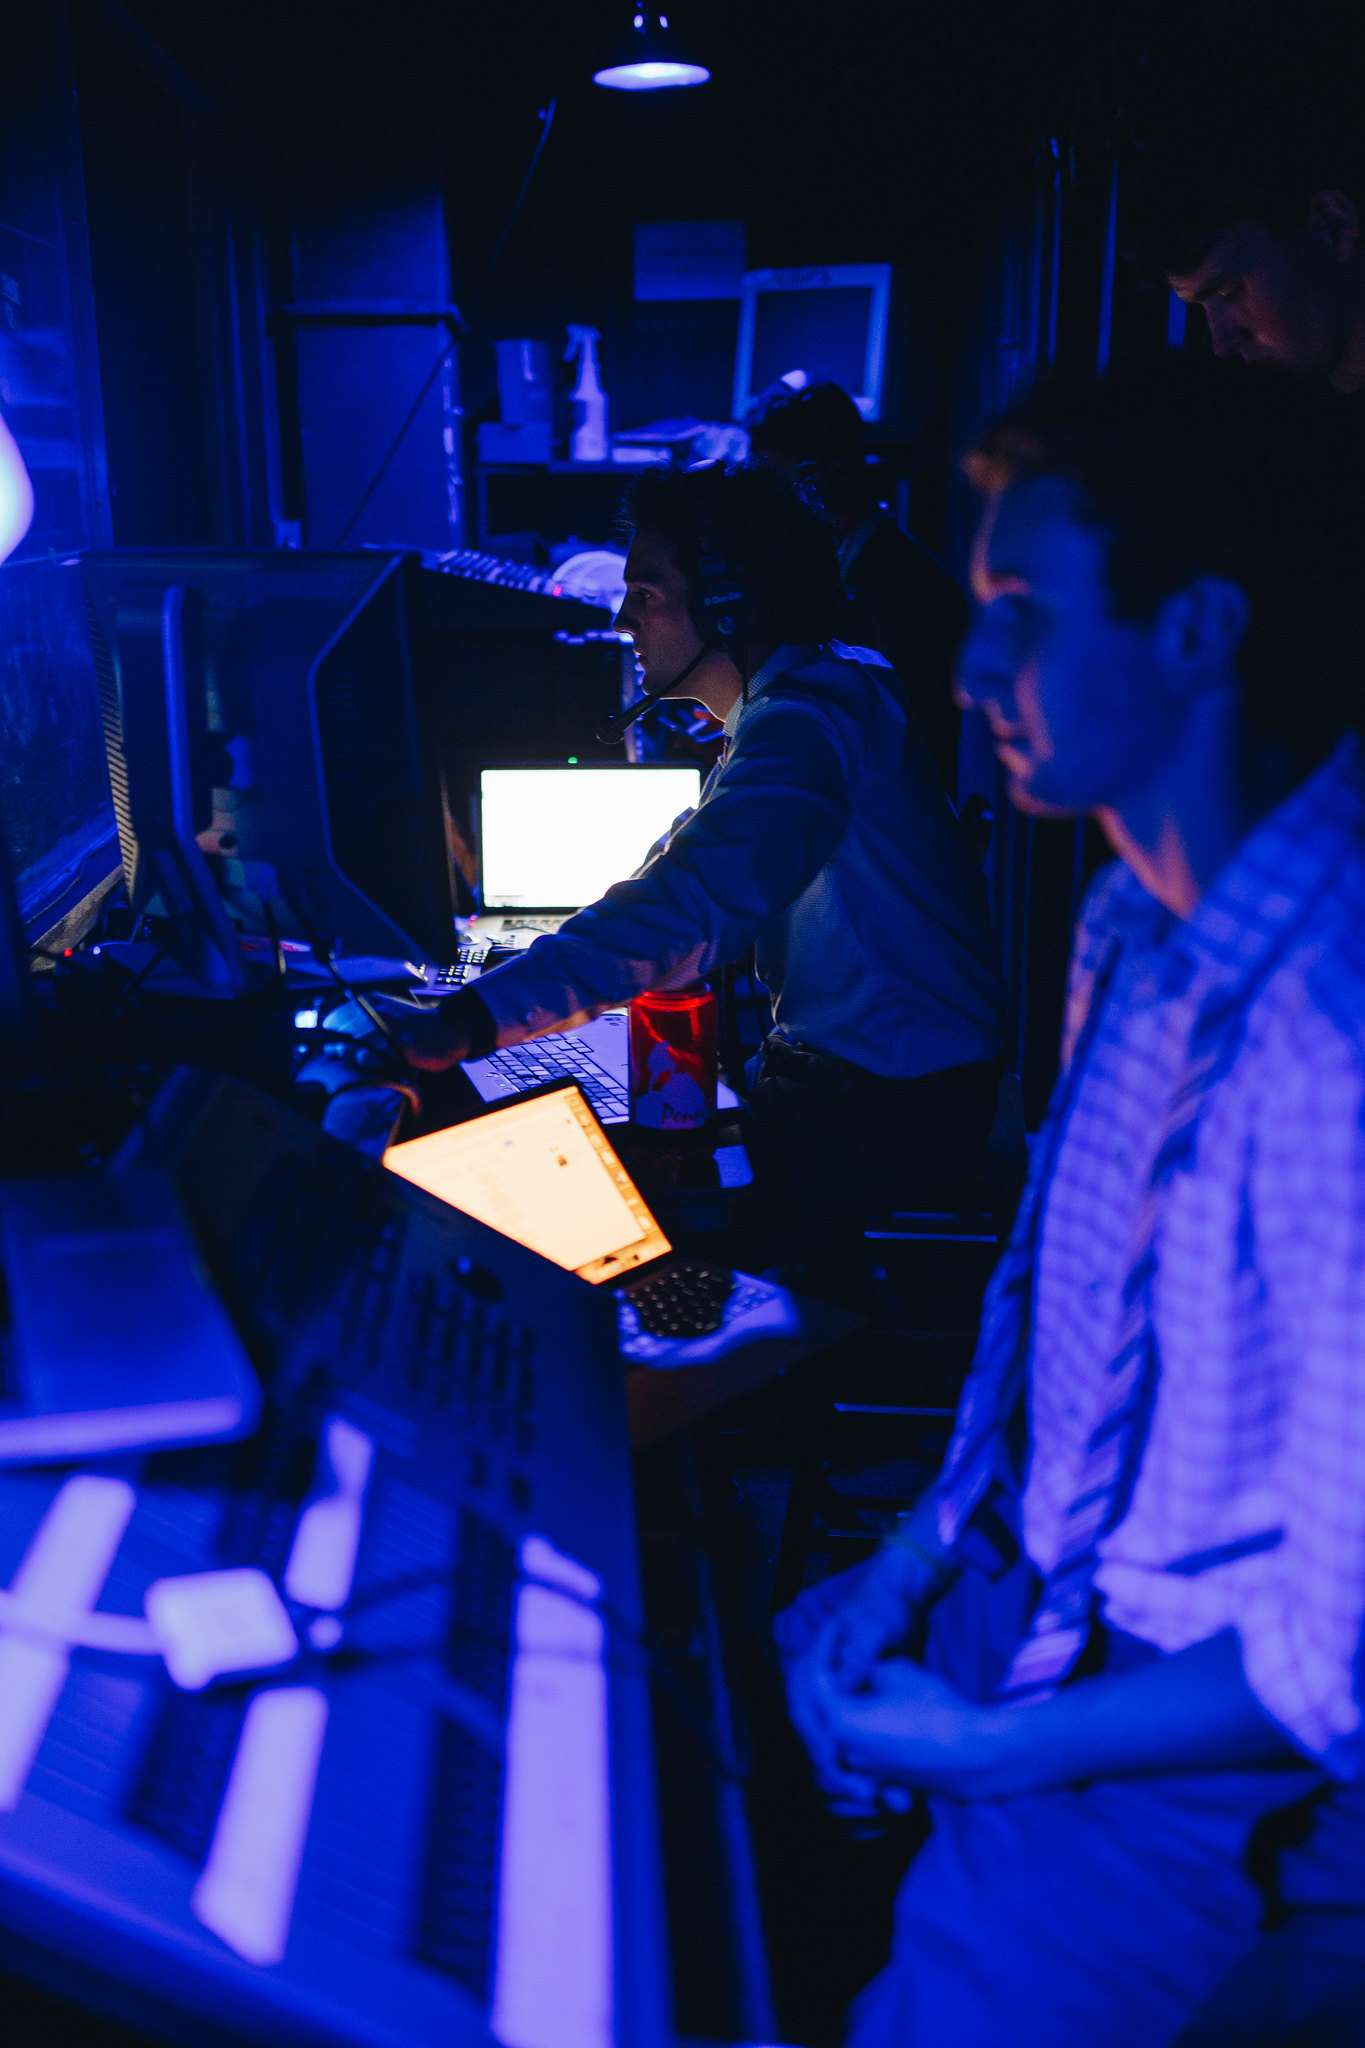 The stage crew works in the booth